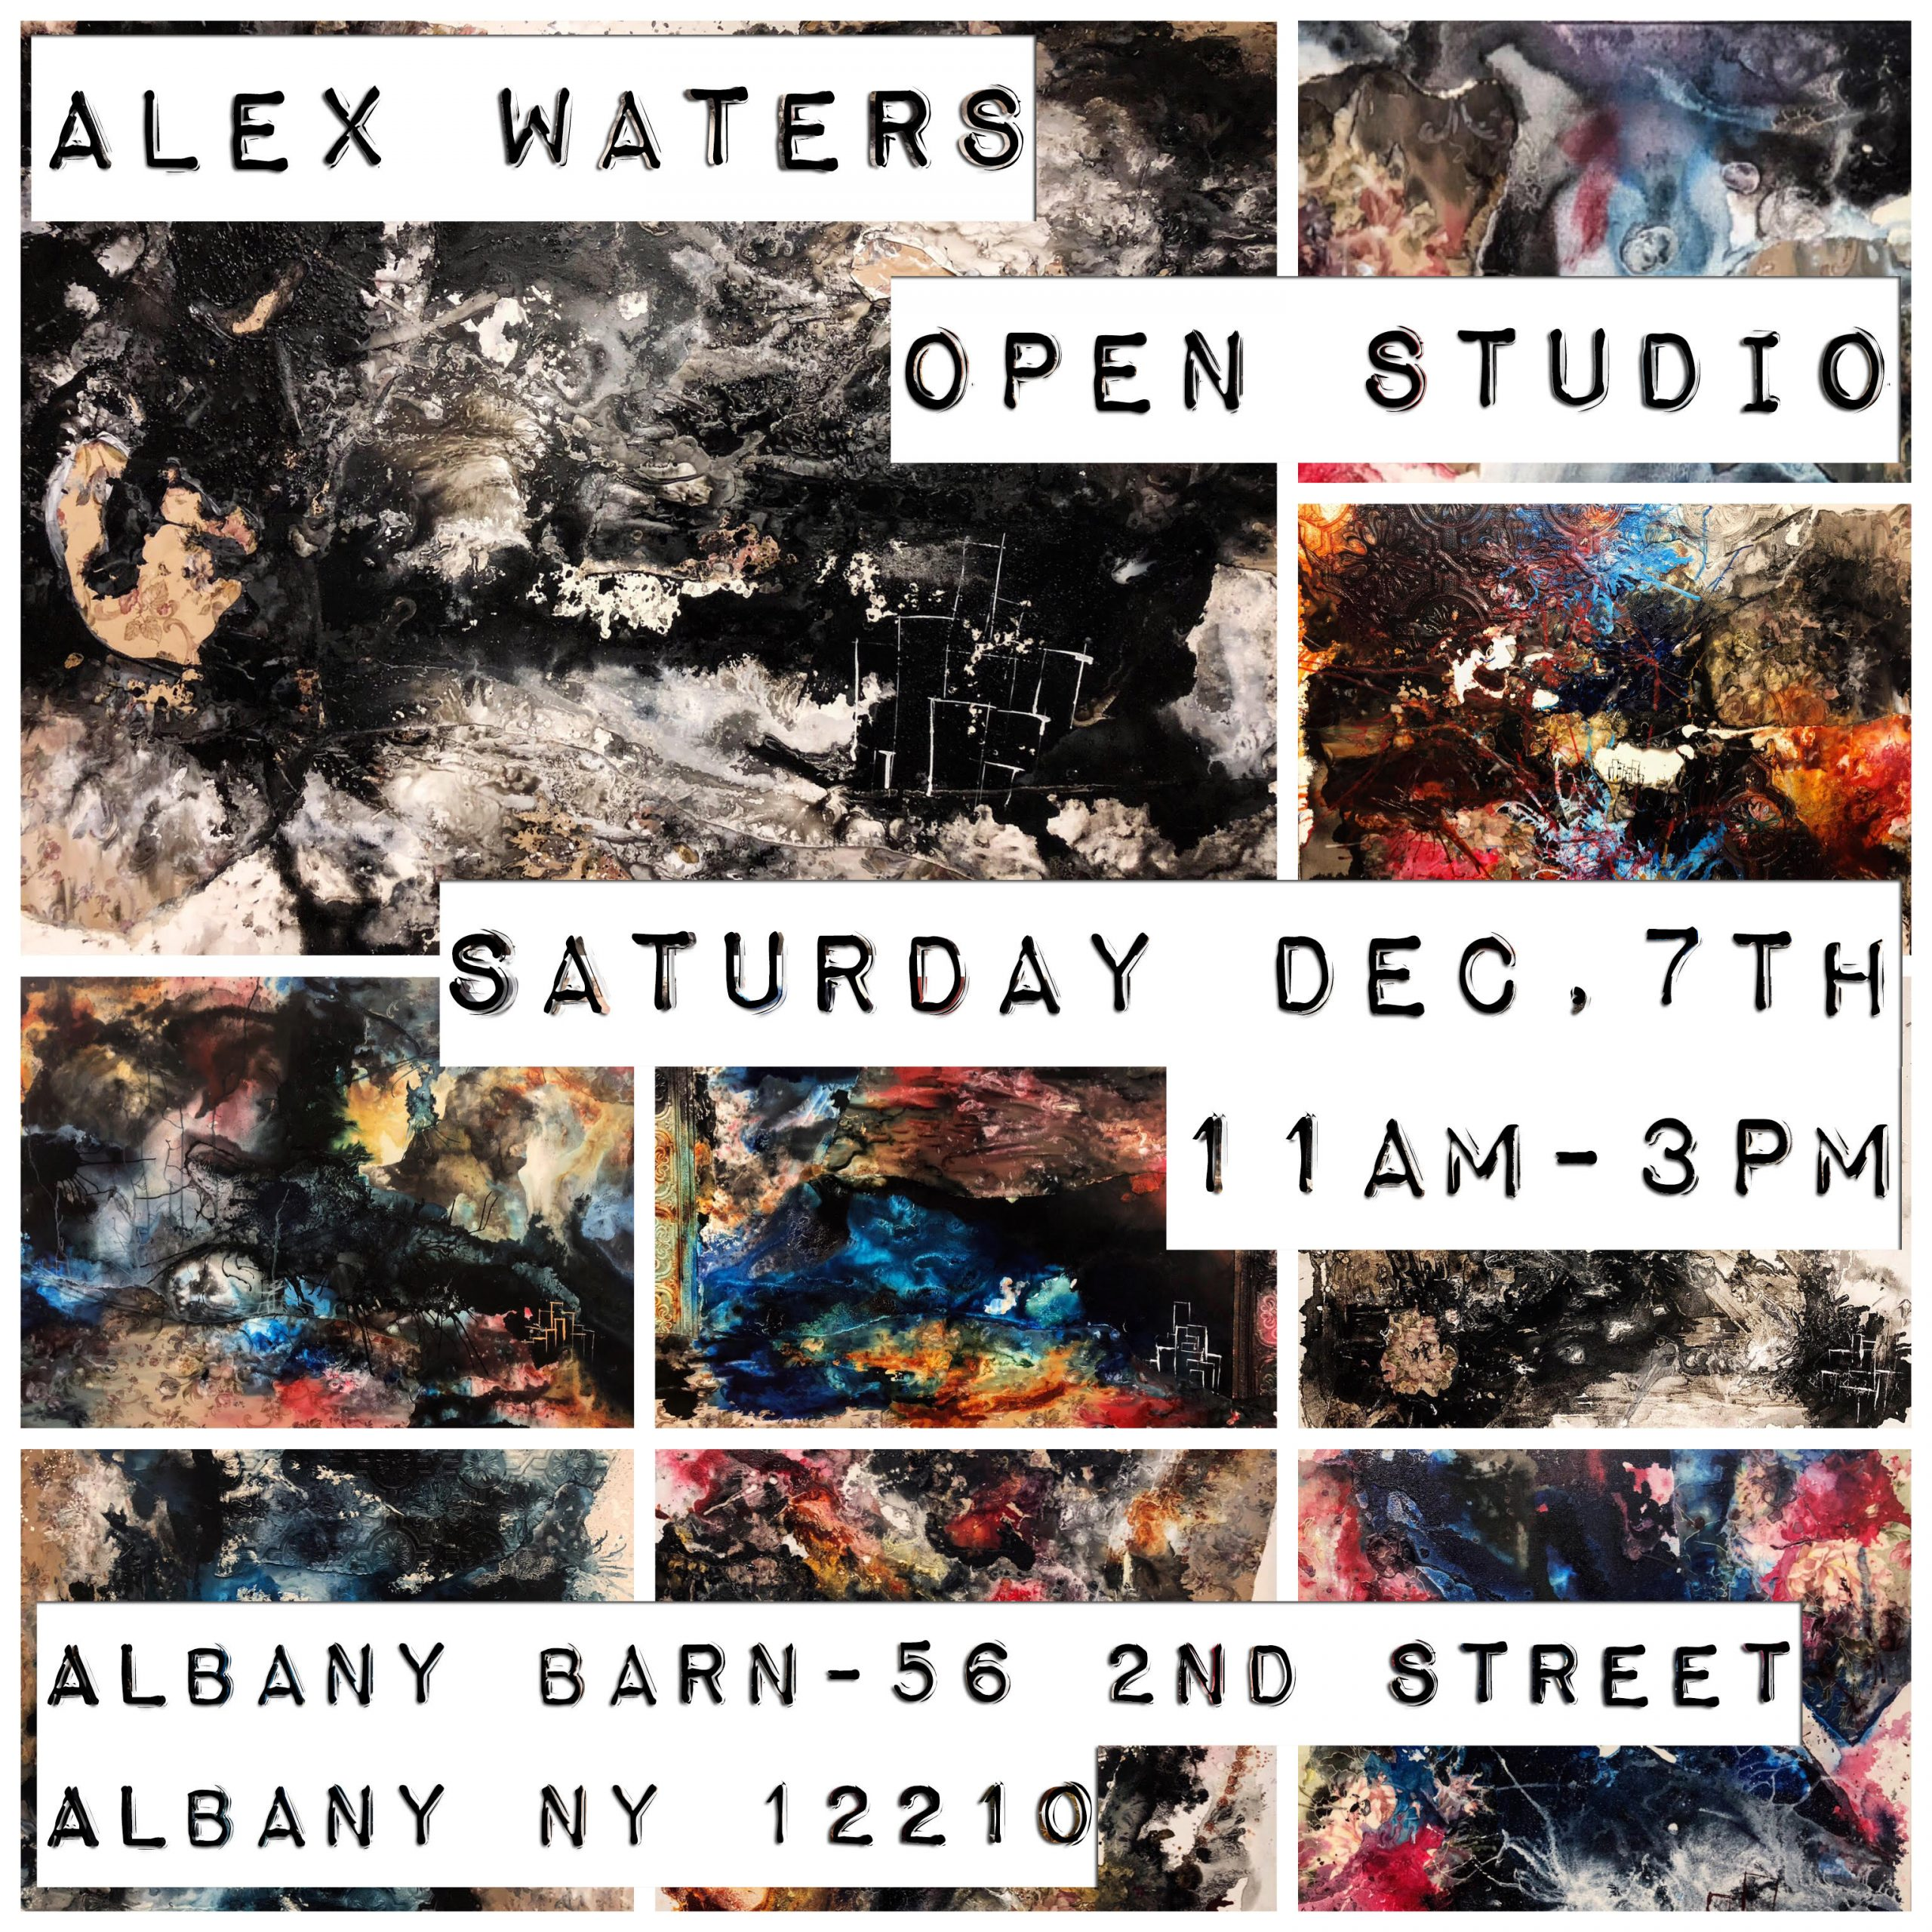 Alex Waters Open Studio